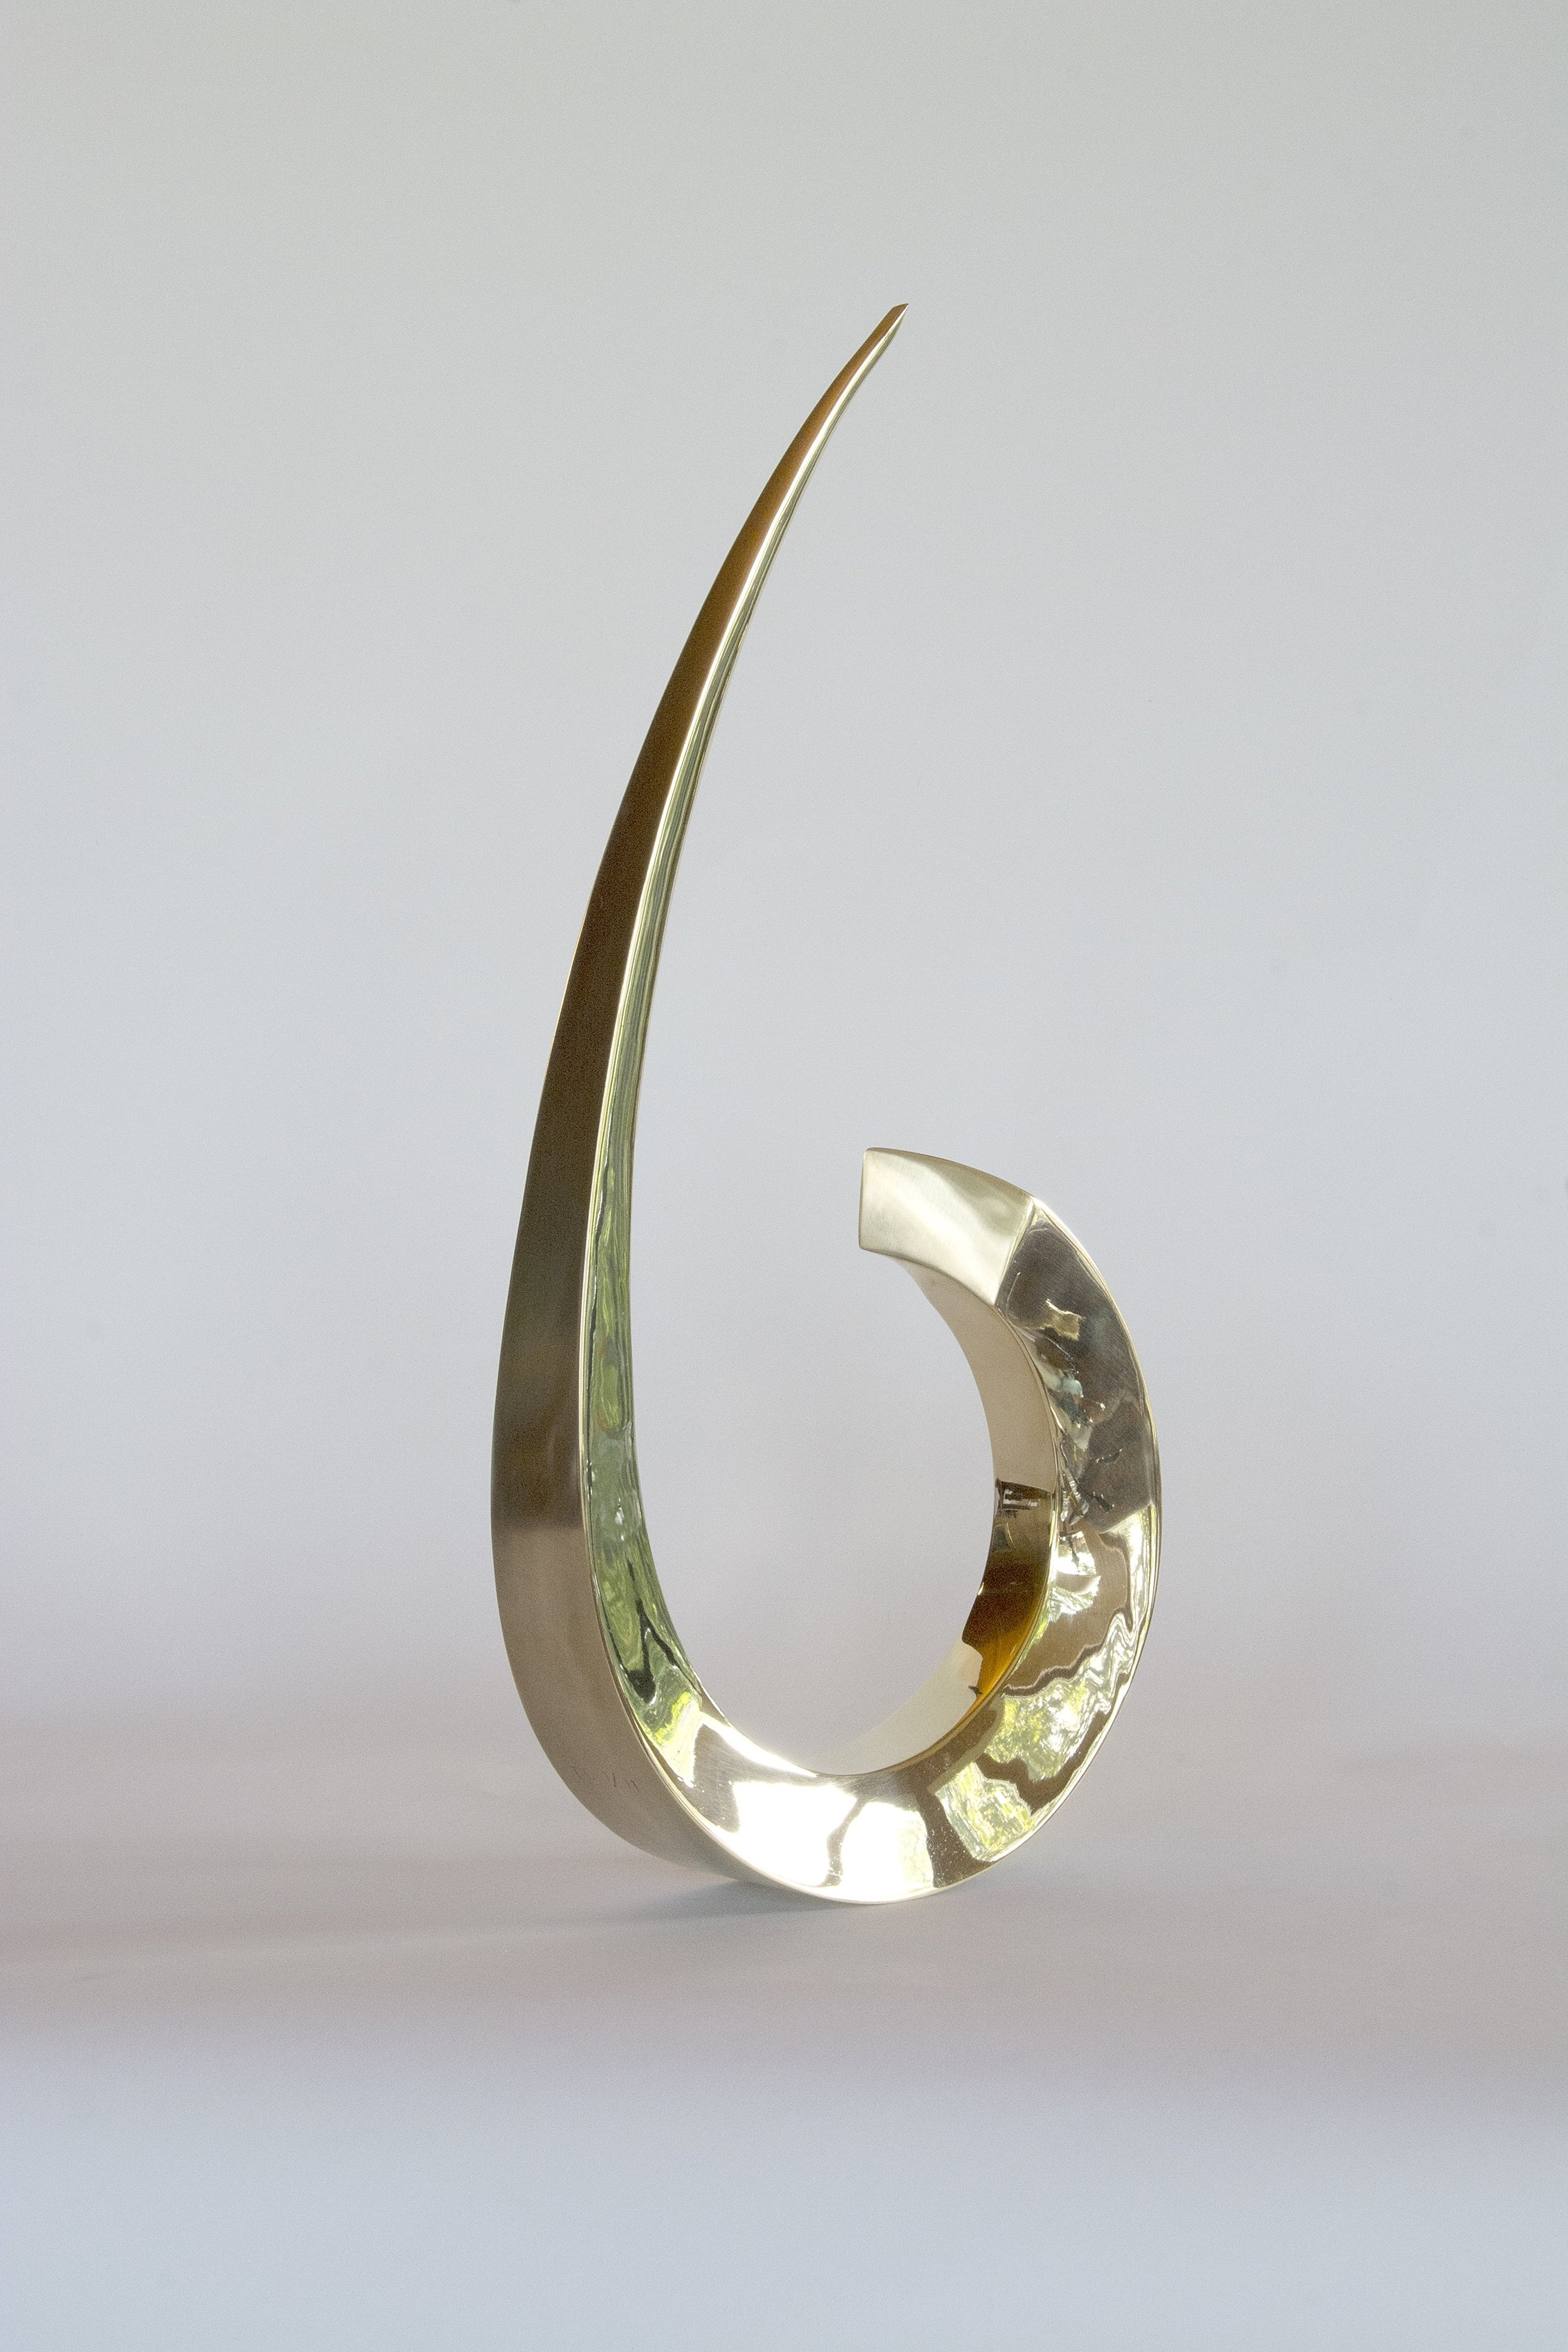 Polished and brushed brass kinetic sculpture, alternative view